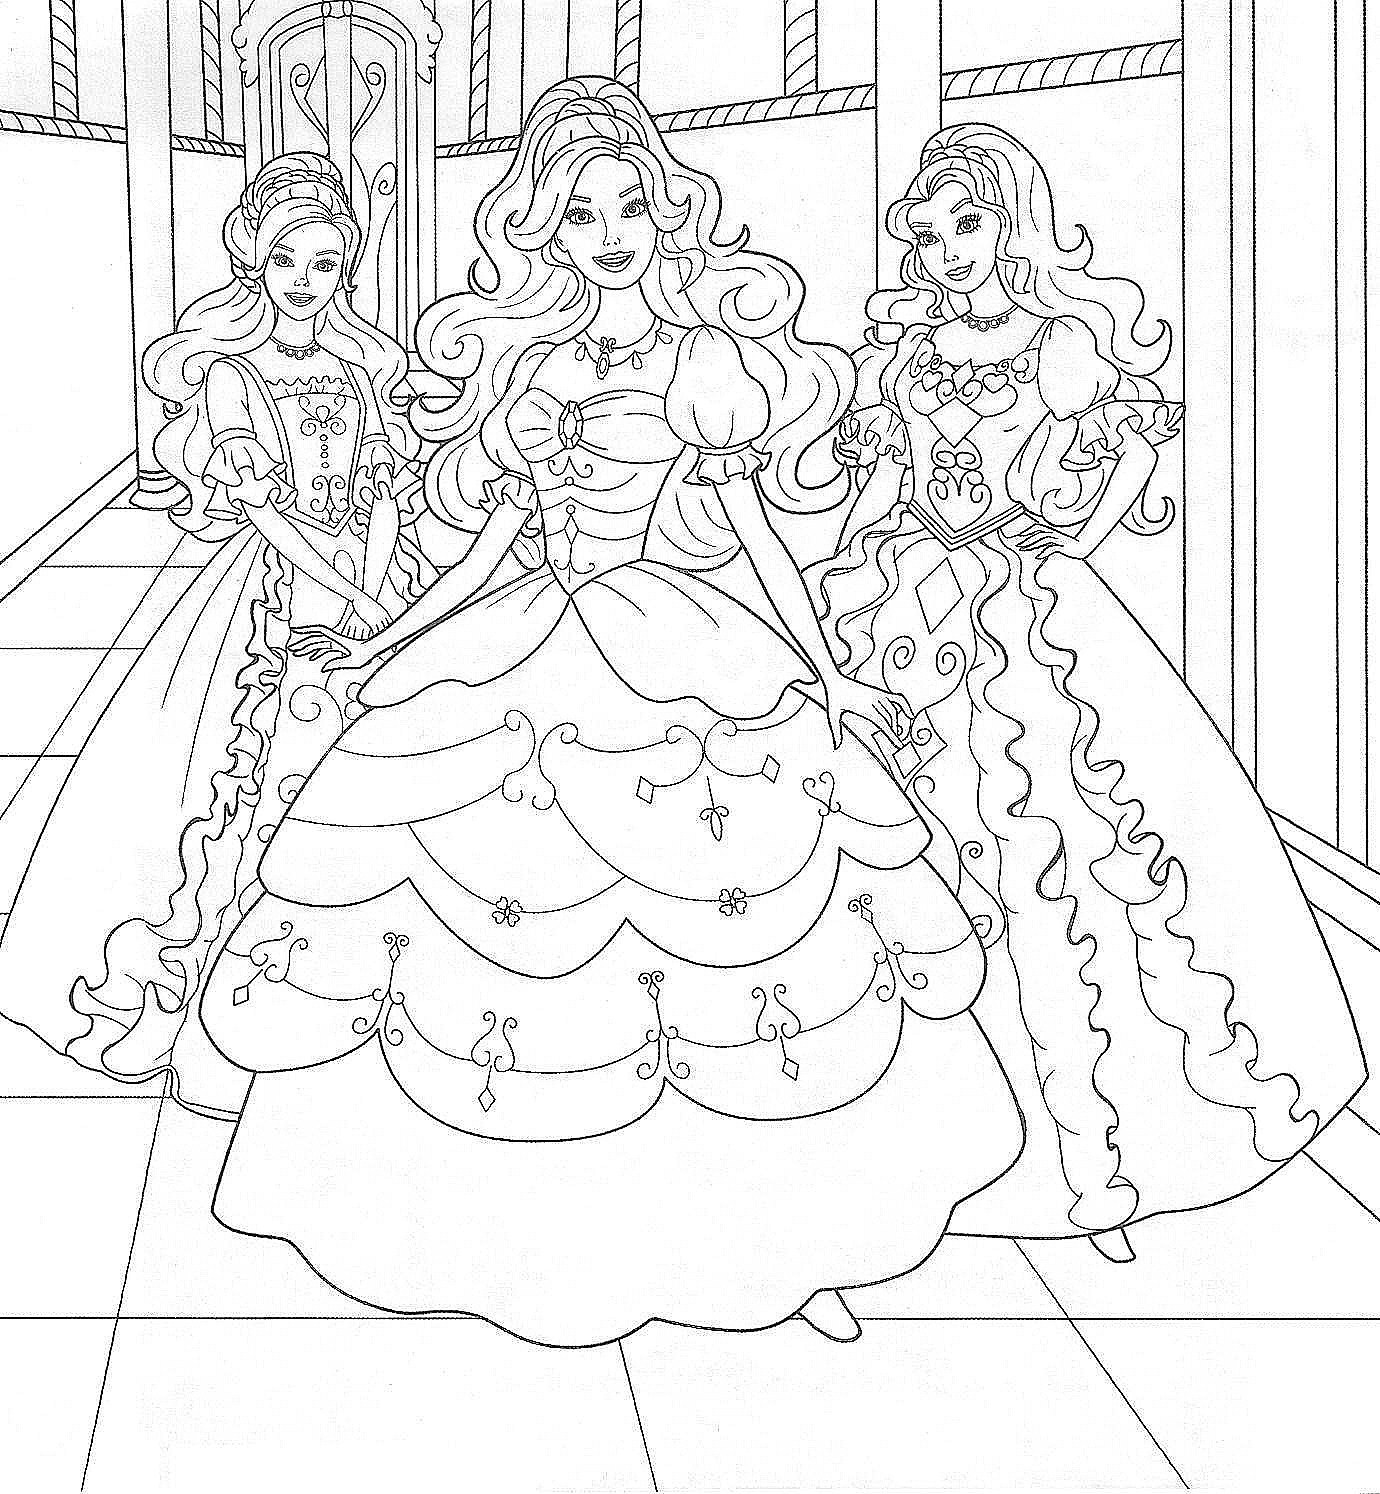 Coloring Pages - Dr. Odd